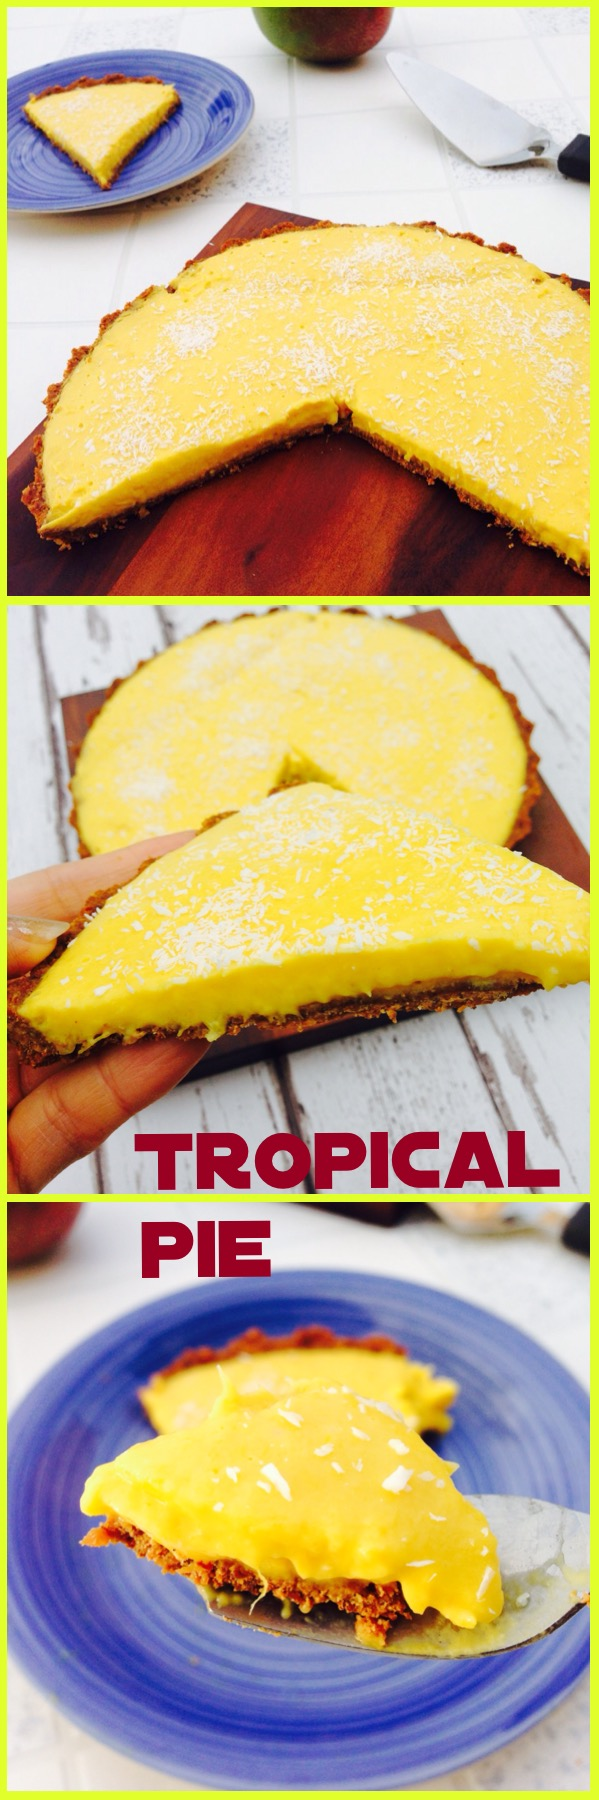 Clean eating, delicious, dairy green, zero sugar tropical pie made with gorgeous ripe fruit perfect for any occasion. Vegan and vegetarian, gluten free